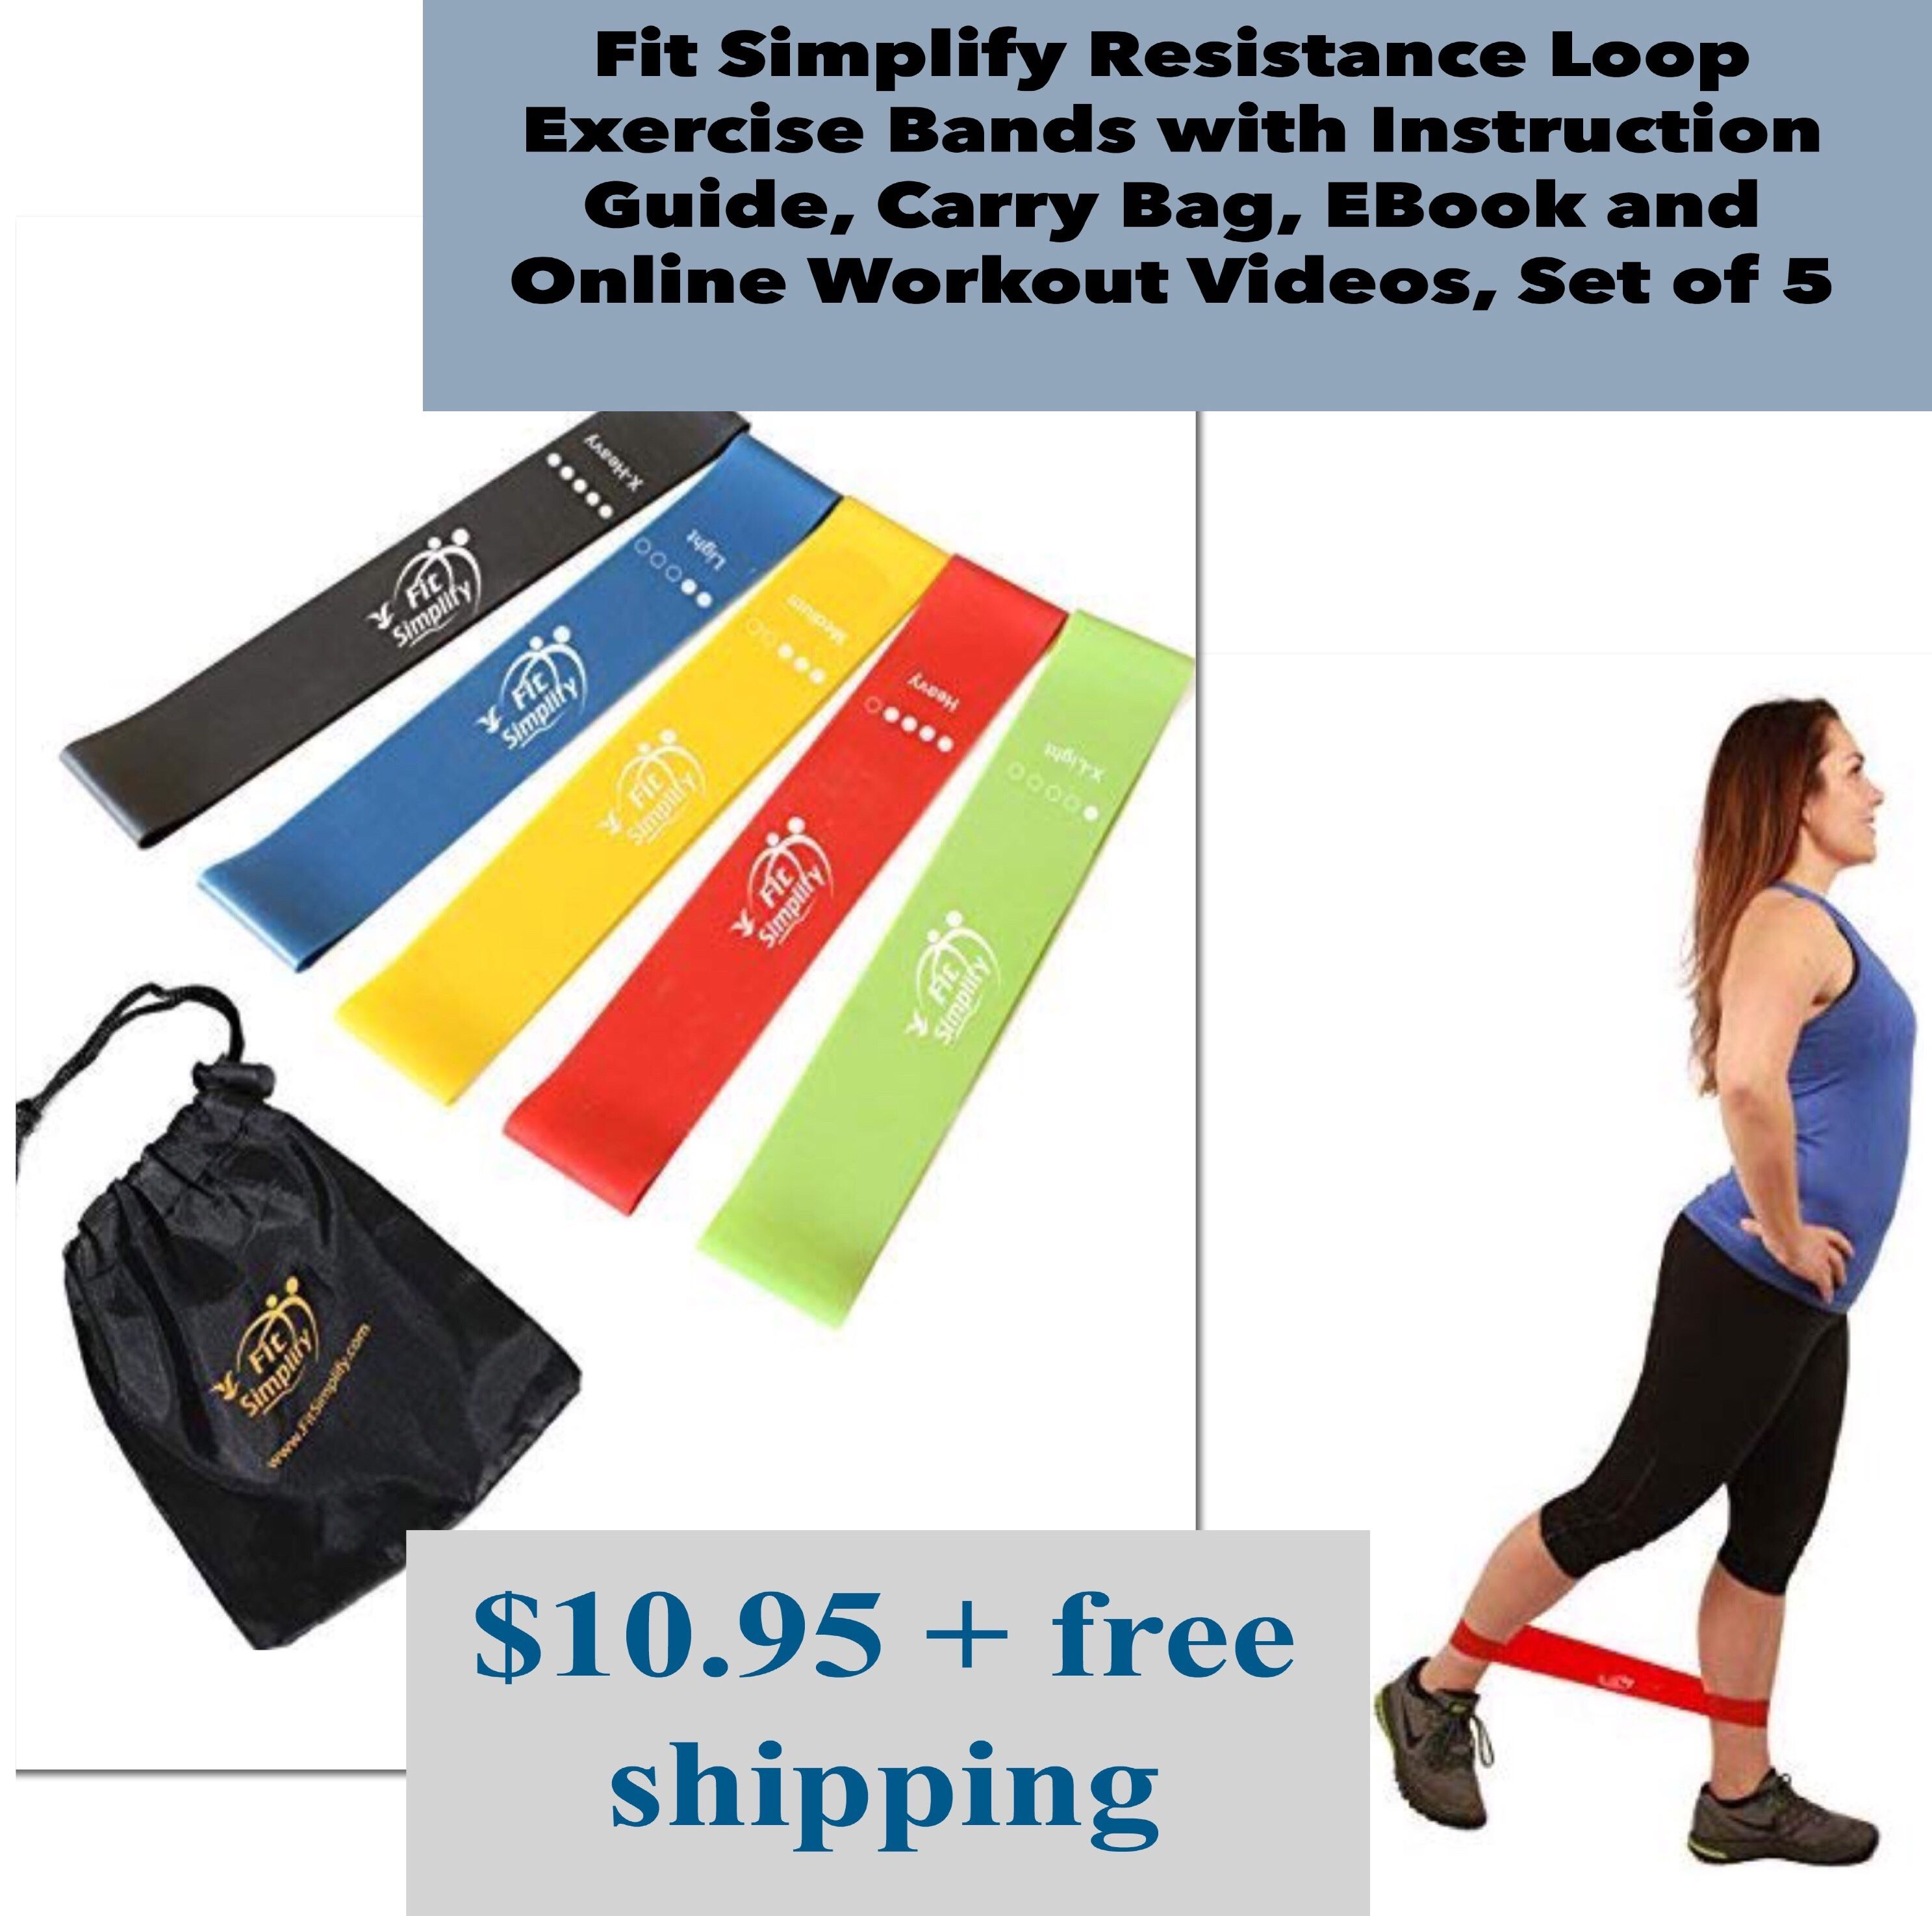 Fit Simplify Resistance Loop Exercise Bands with Instruction Guide Carry Bag